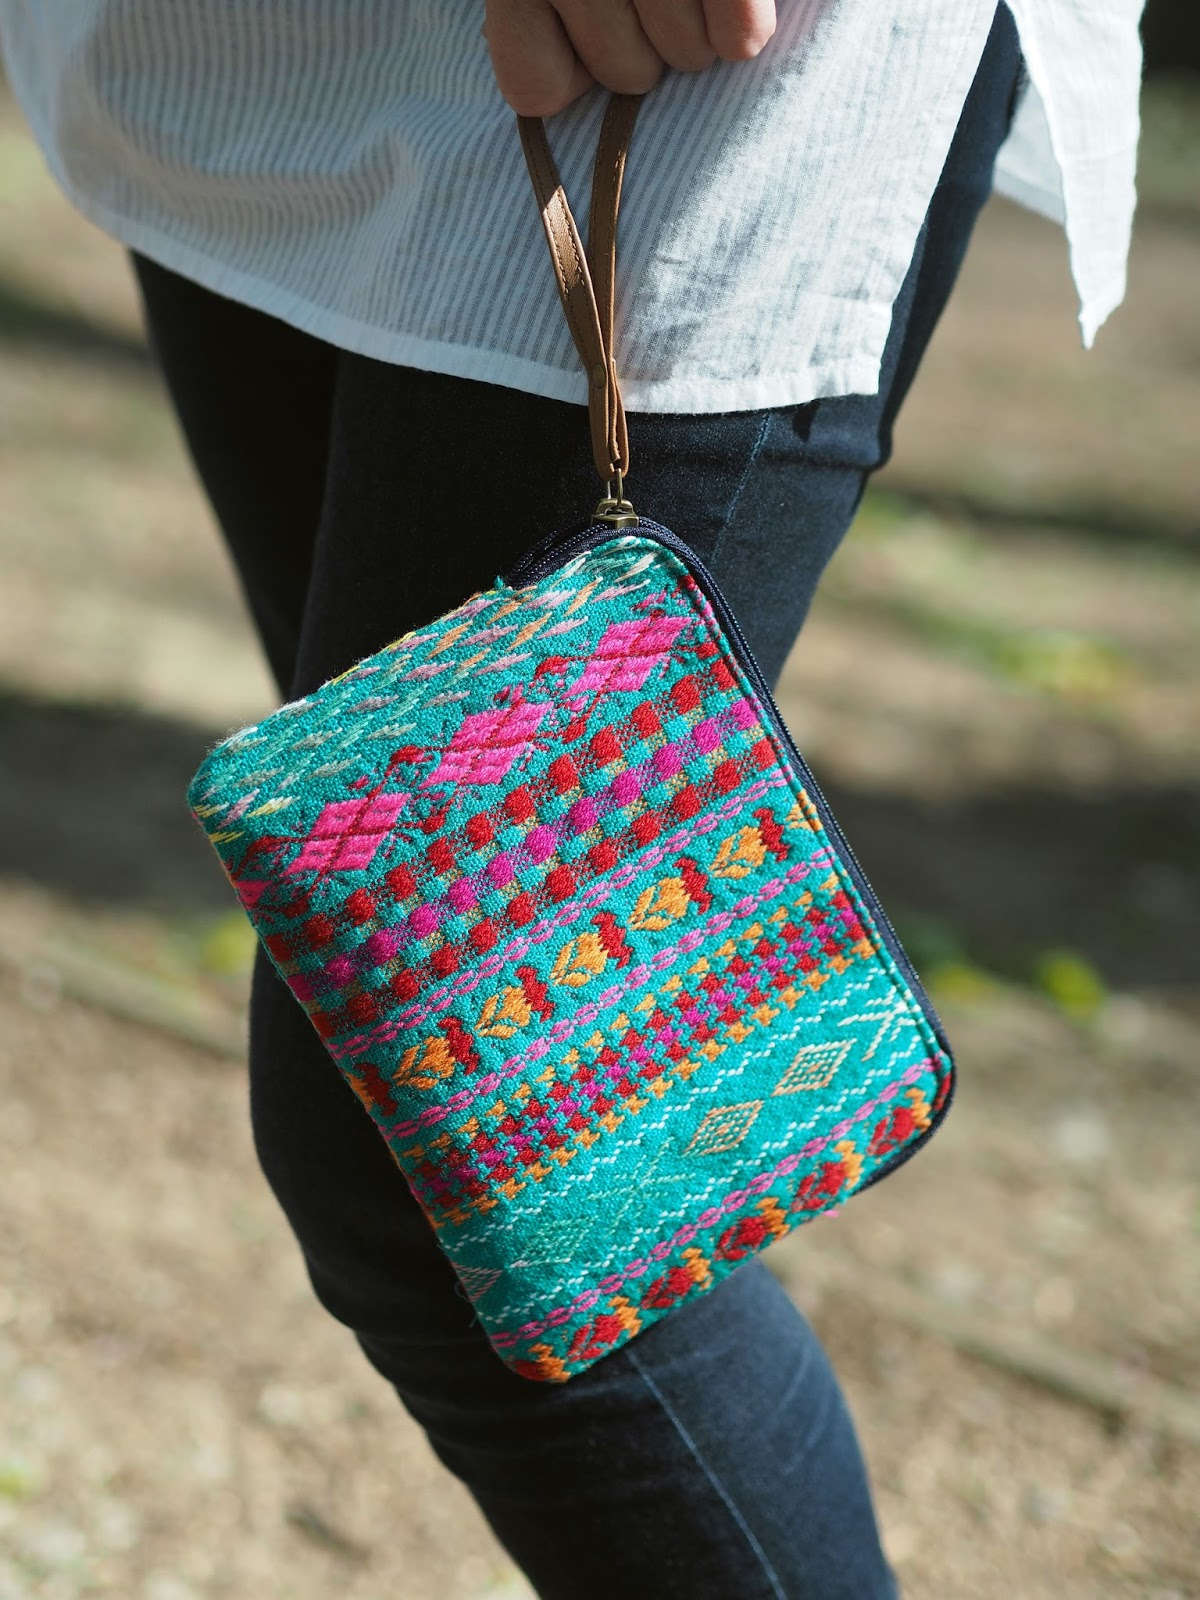 Aztec inspired clutch bag